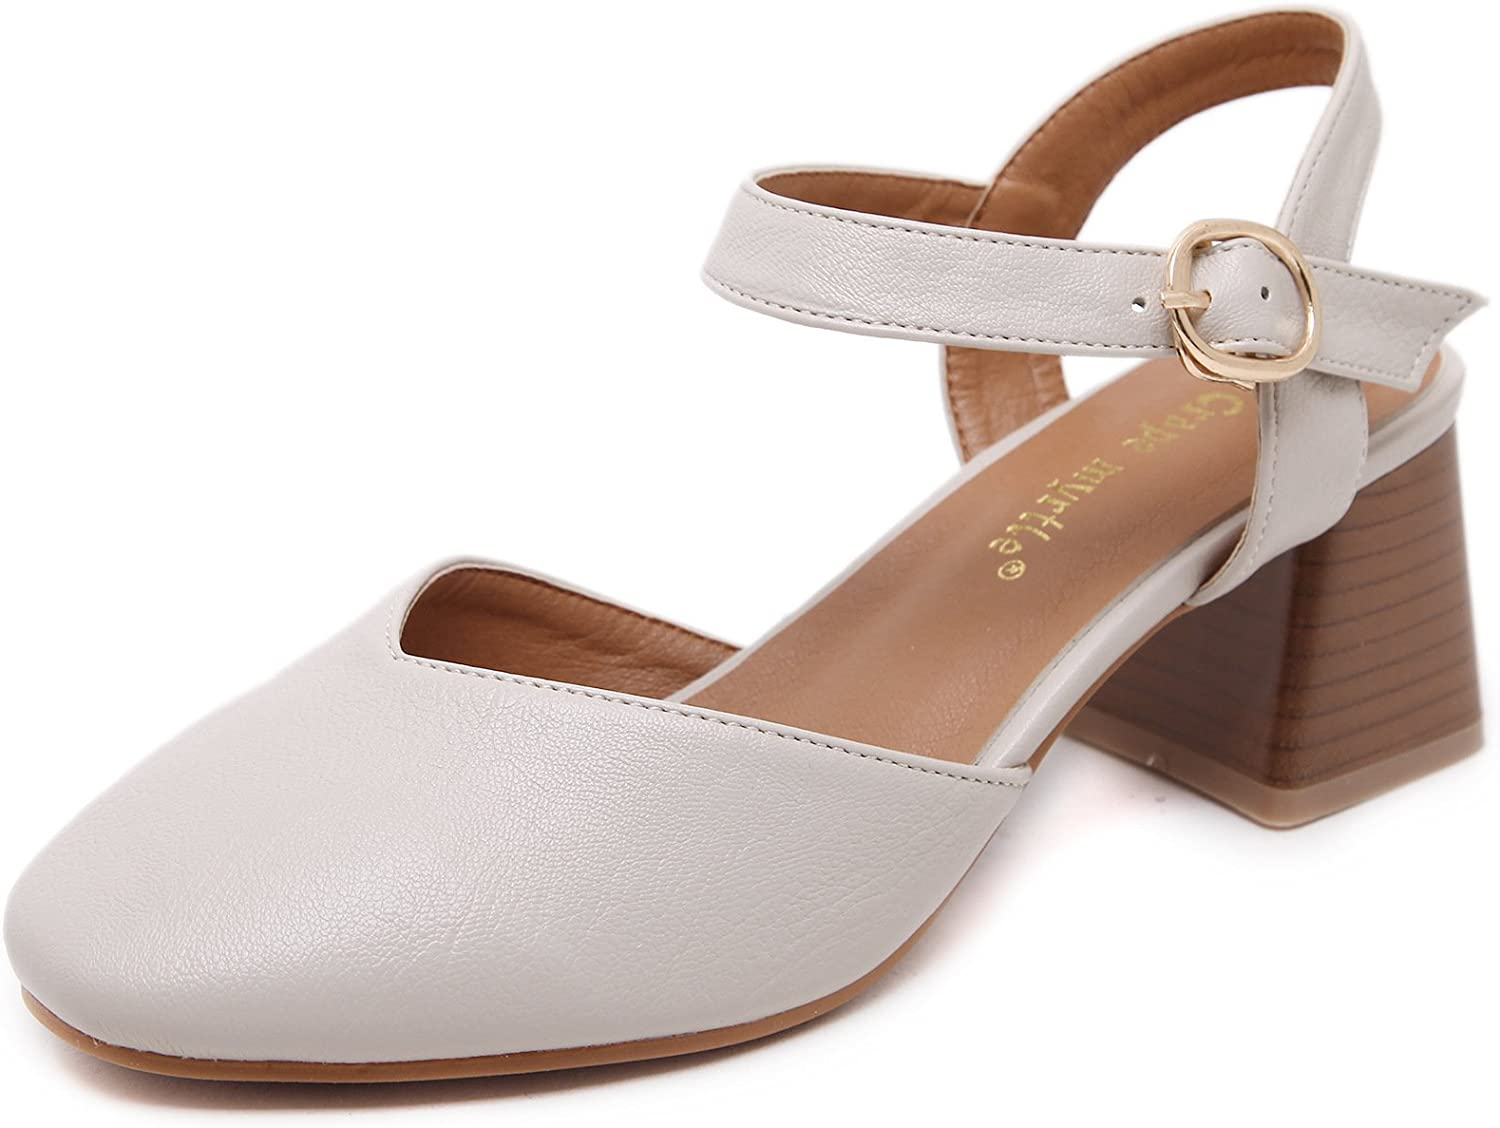 Women's Sandals, Retro Square Square Sandals, European and American Casual shoes, Heels and Heels.